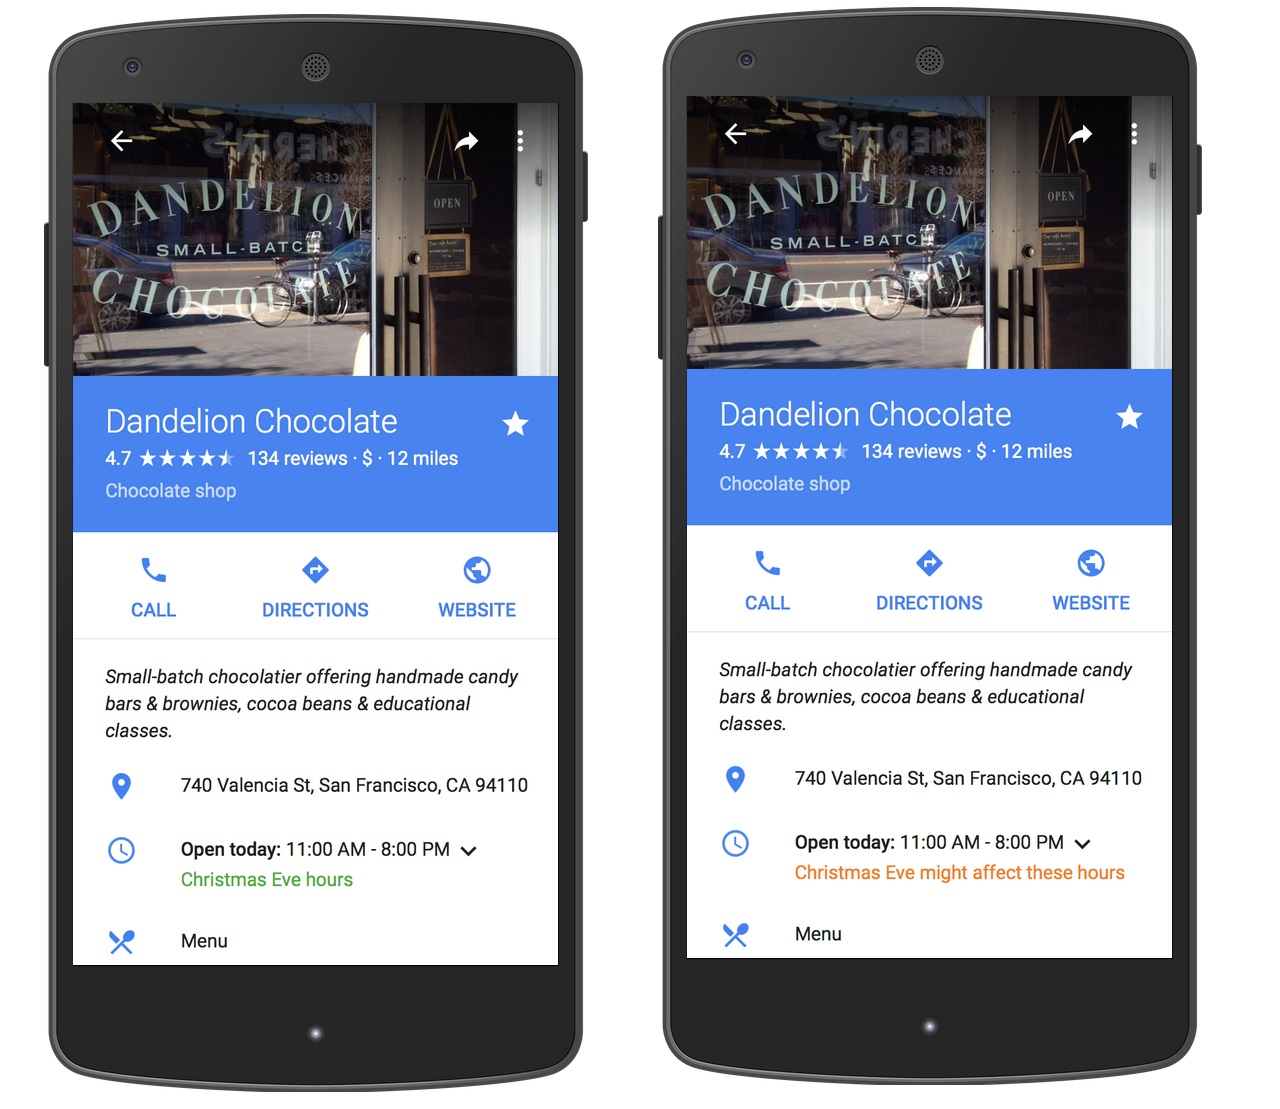 Google Maps Now Shows 'Holiday Hours' for Businesses